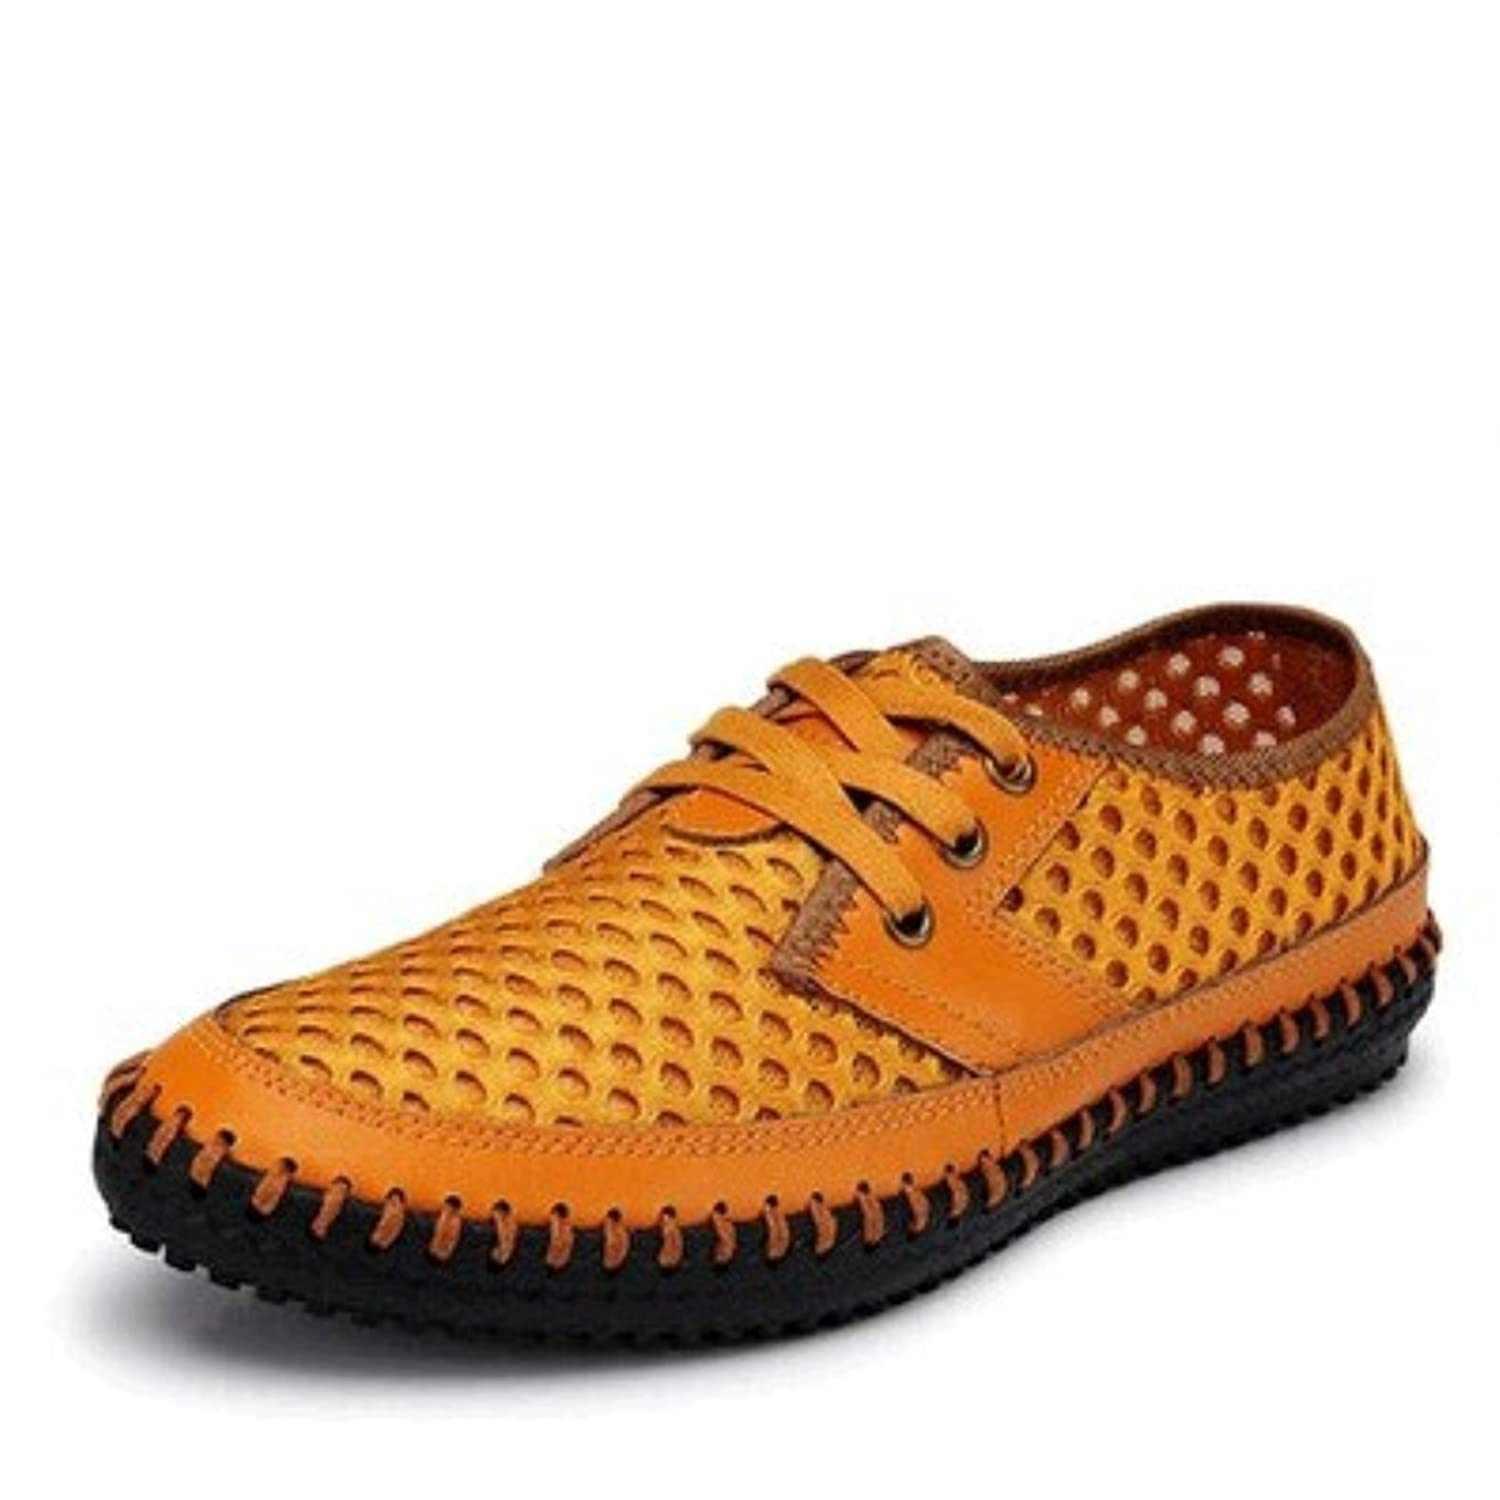 Men's Mesh Walking shoes Water Loafers Sandal Shoe,Breathable,Running ,Athletic,Casual